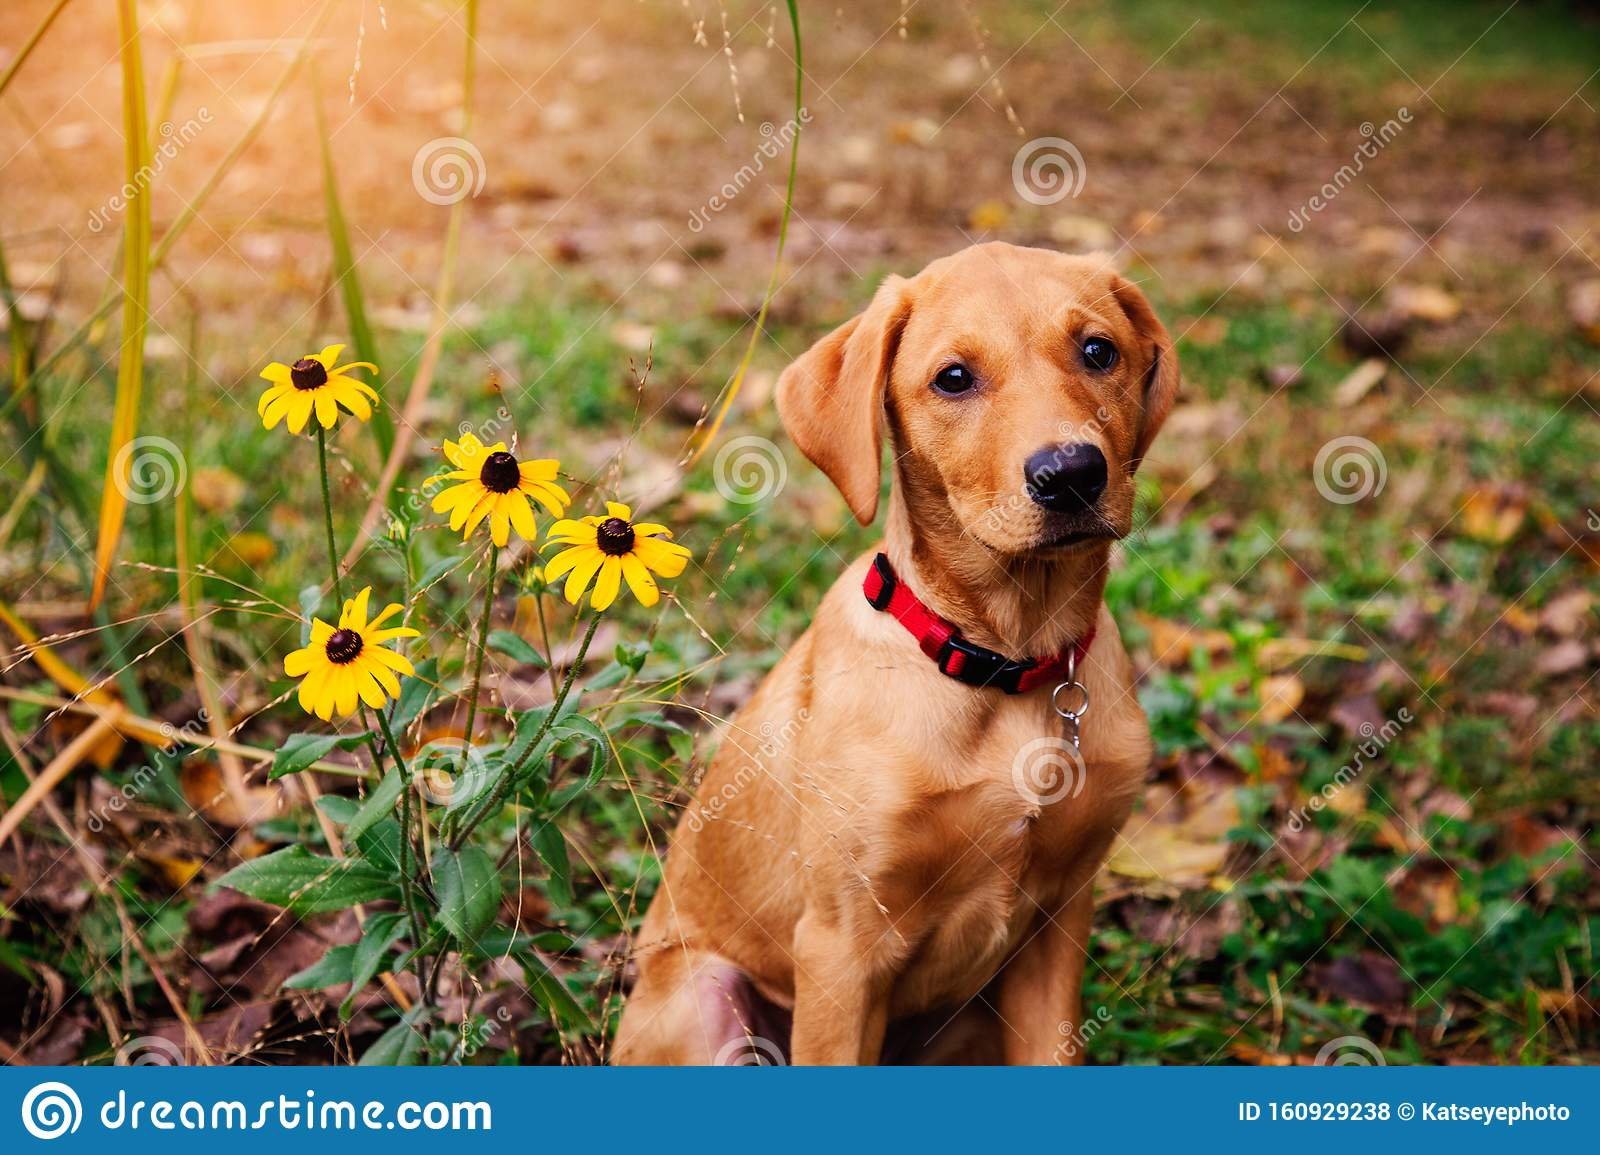 Red Labrador Puppy Sitting By Flowers Stock Photo Image Of Next Comfortable 160929238